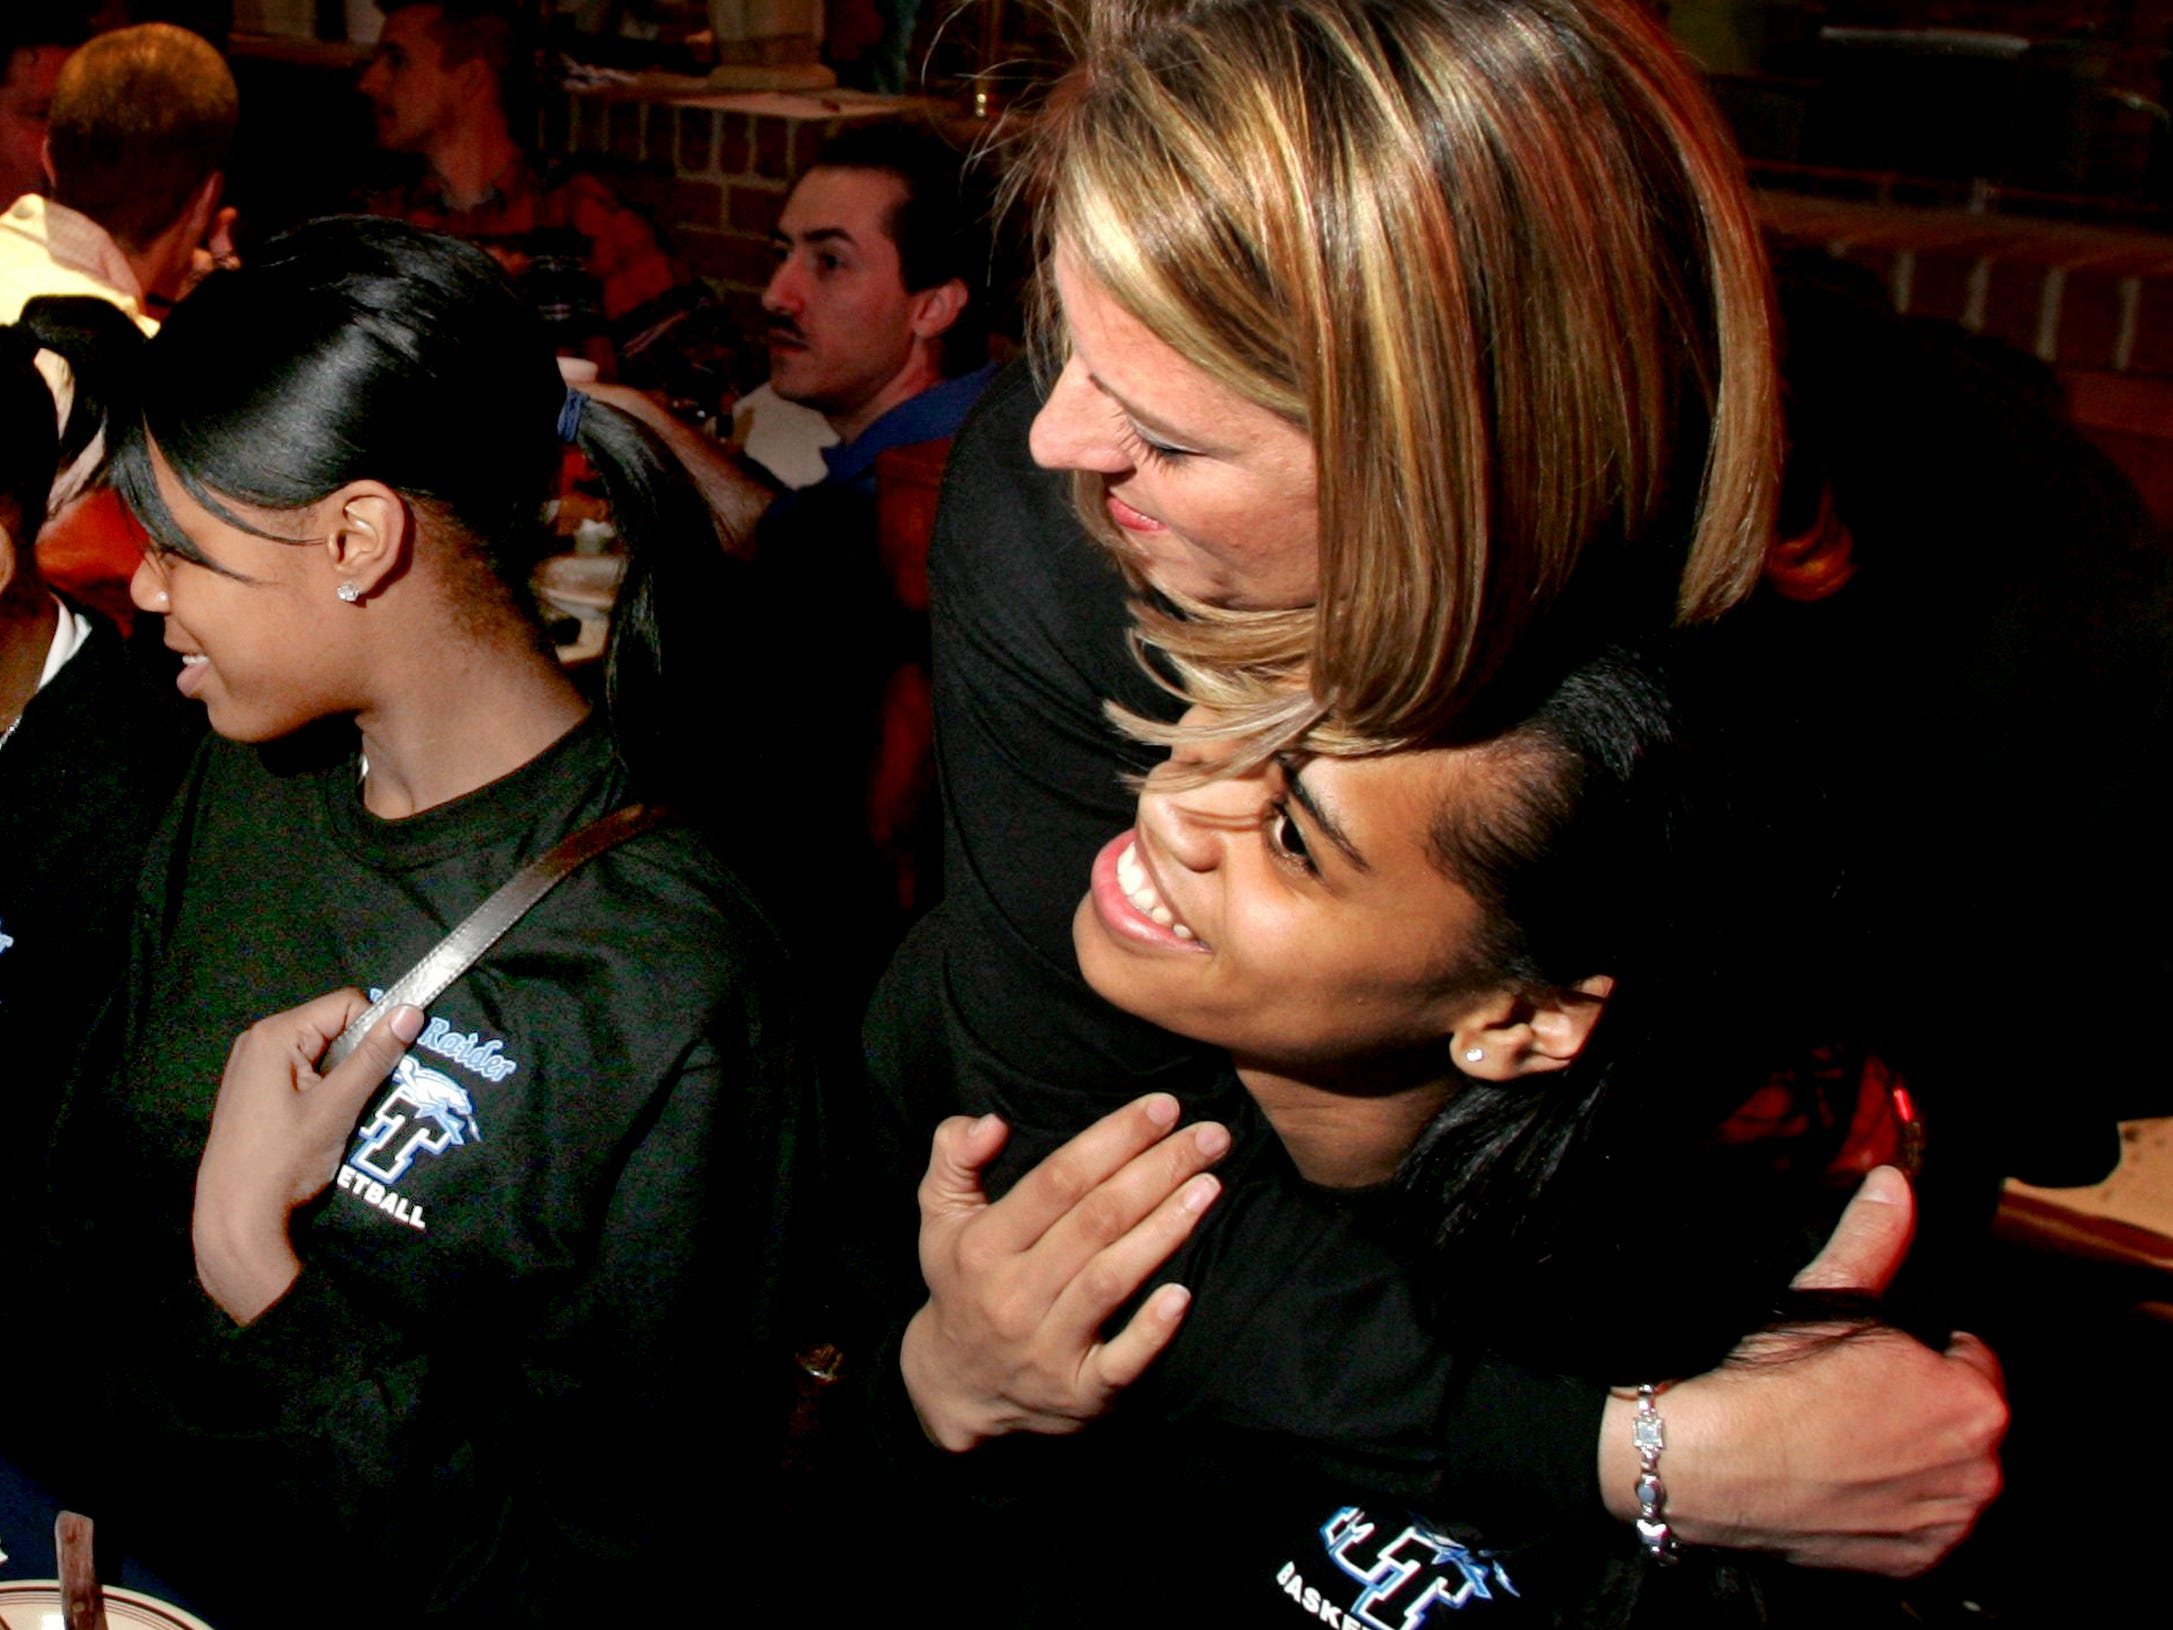 MTSU Coach Stephany Smith hugs her player Tia Stovall while watching the NCAA Basketball selection announcing that MTSU will play fifth-seeded North Carolina State (#22) on Saturday at Corky's BBQ restaurant in Murfreesboro, Tenn., Sunday, March 13, 2005.